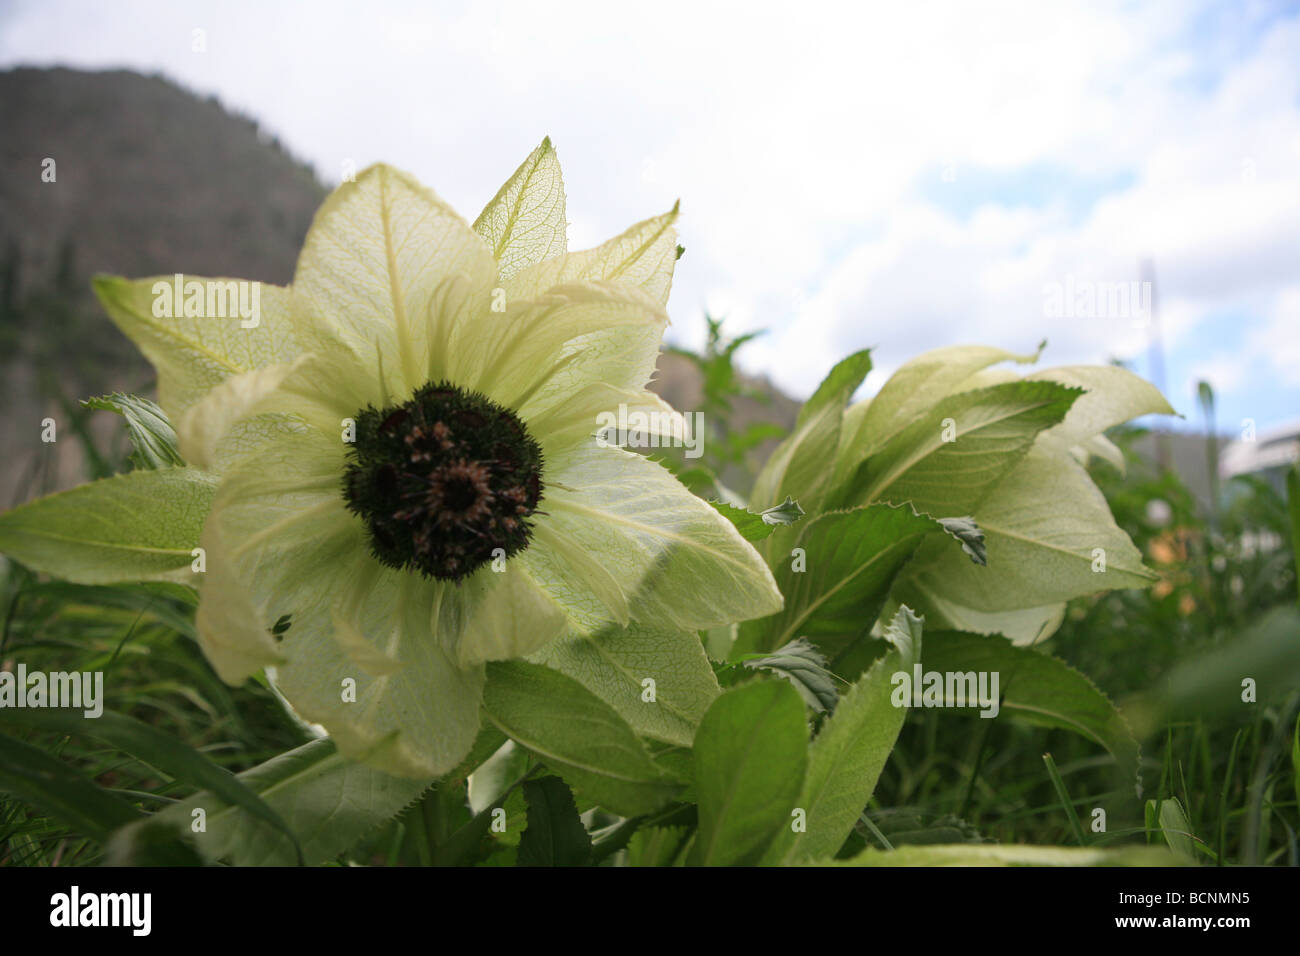 Snow Lotus Herb Blooming On Stock Photos Snow Lotus Herb Blooming